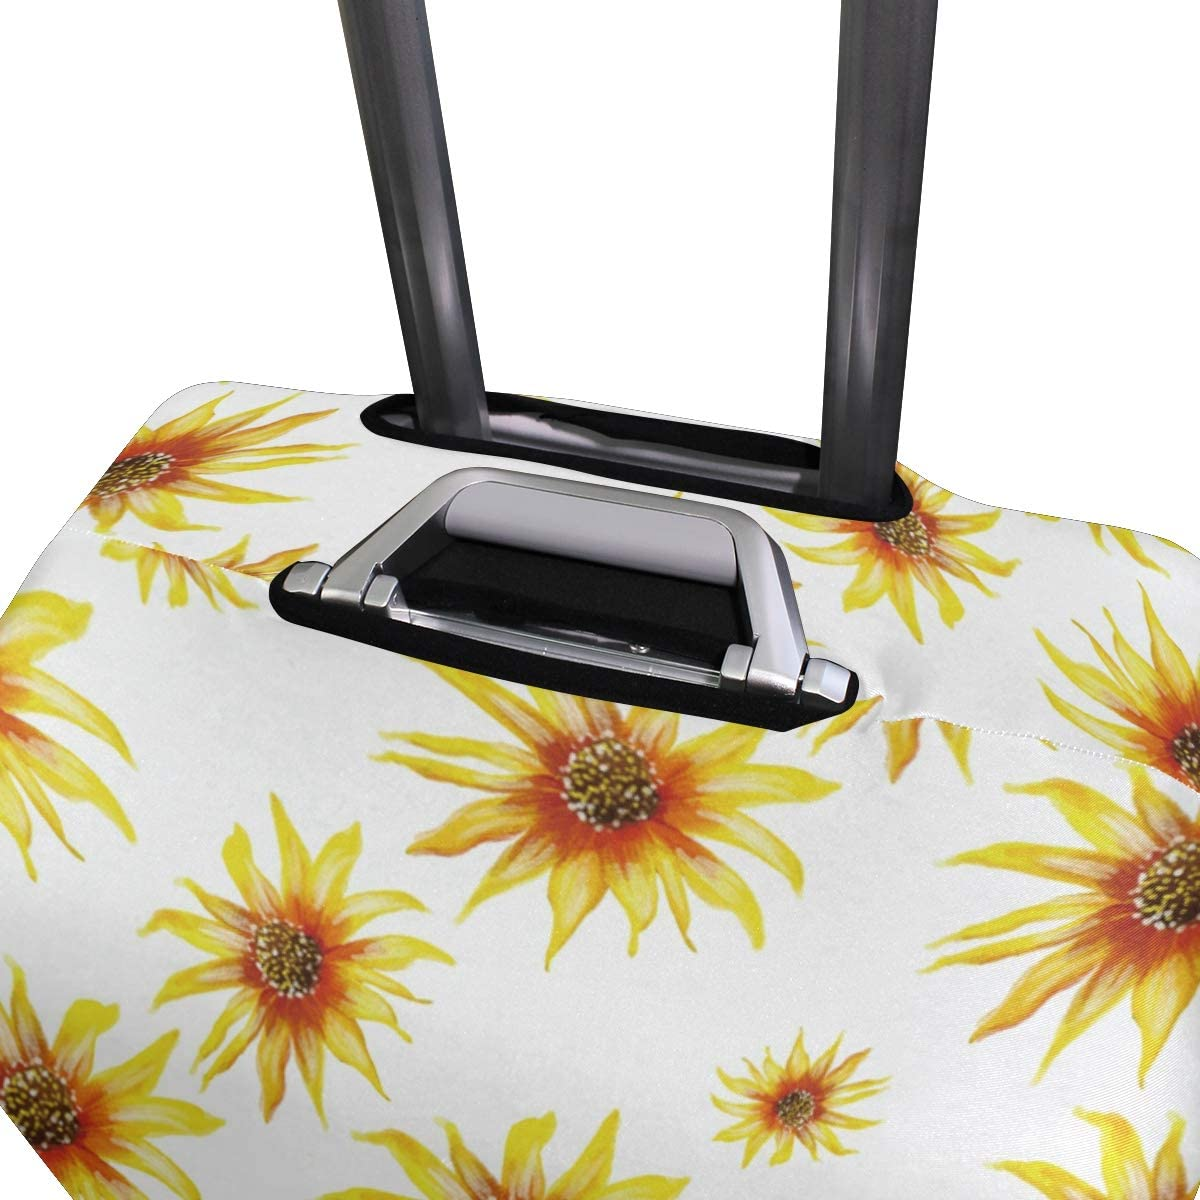 Travel Luggage Cover Seamless Yellow Sunflowers Pattern Suitcase Protector